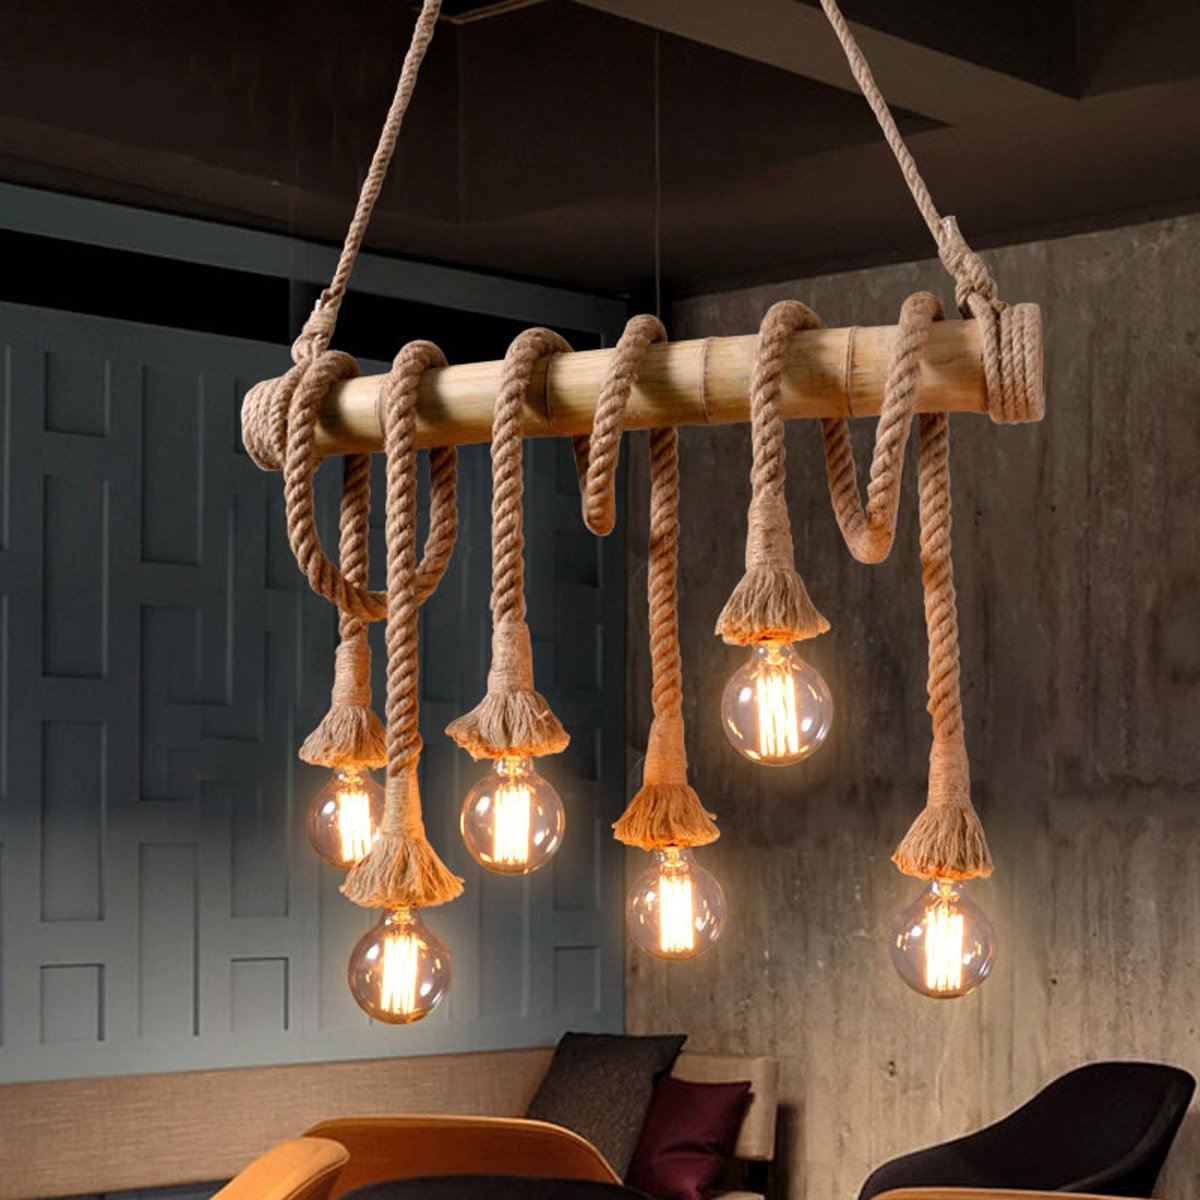 traditional products hemp rope retro product interior for styled image lamp pendant nautical n countryside lights